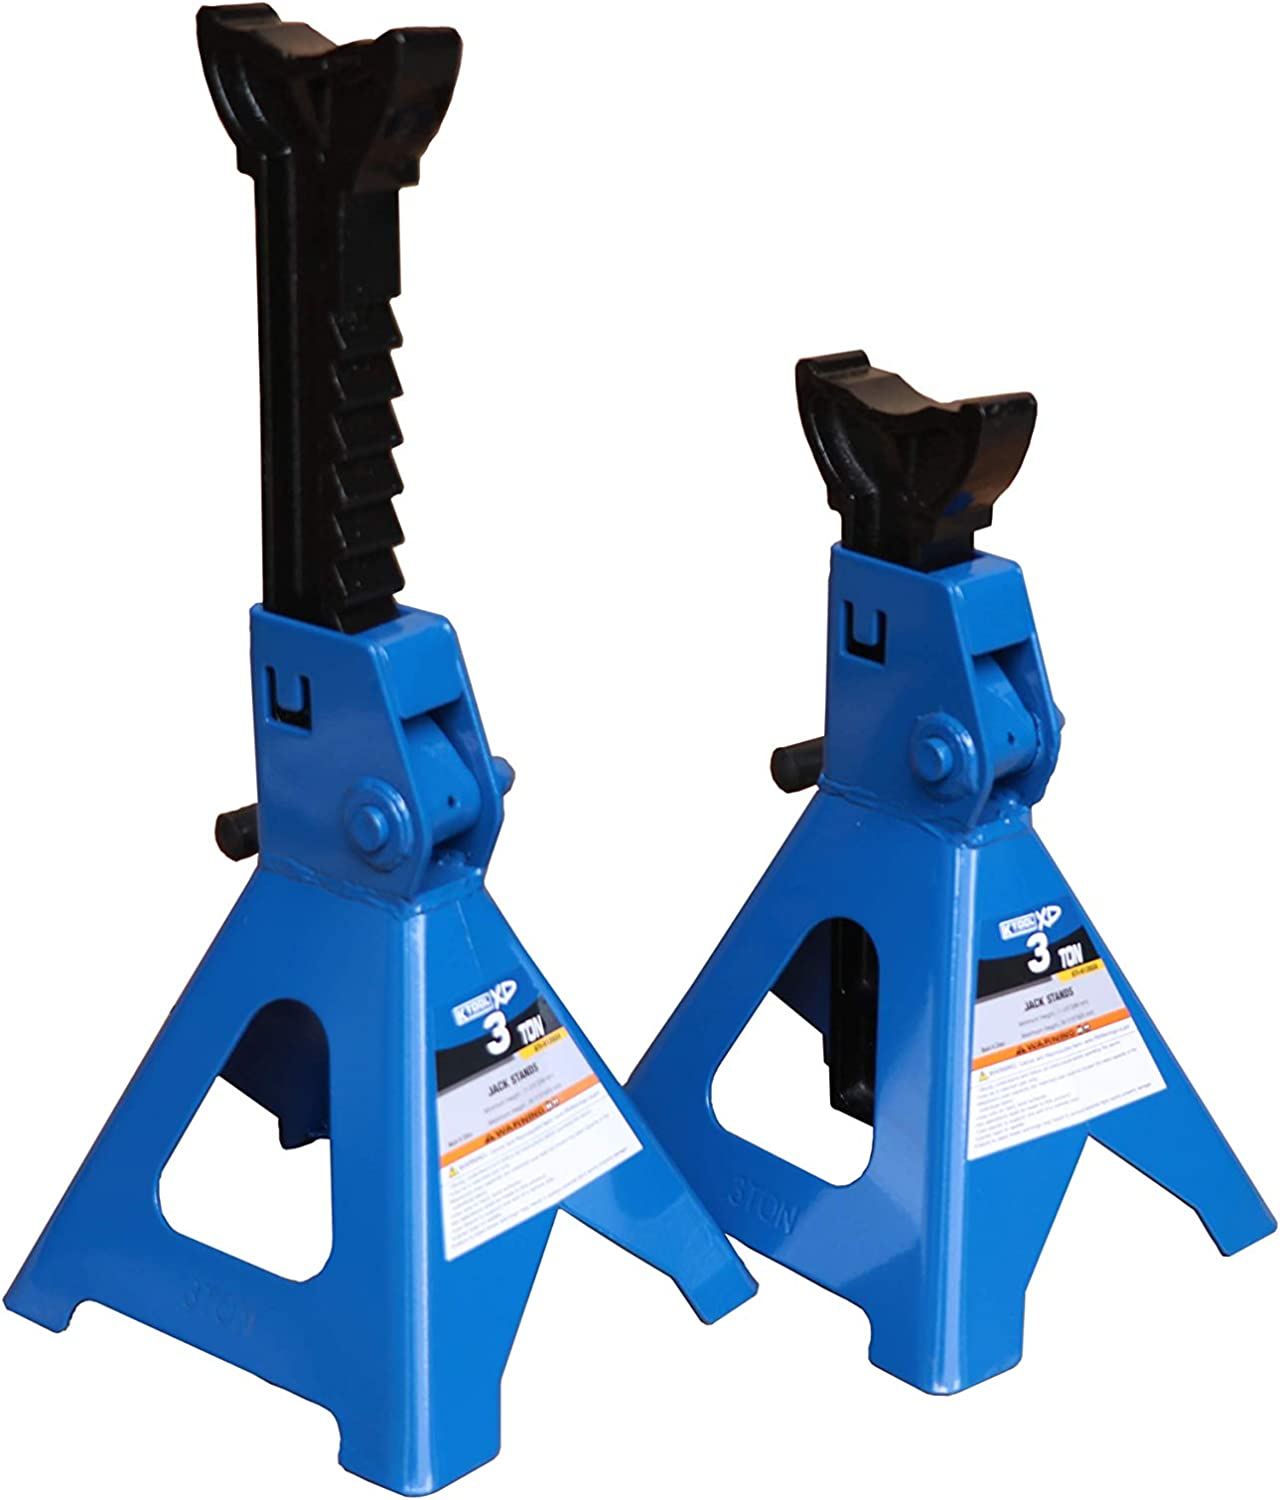 XD ; Height Ranges 11 2//5 to 16 7//10 Comes in Pair K Tool International 3 Ton Jack Stands Pair Total Weight 15 Pounds Covered by Two Year Warranty; KTI61202A